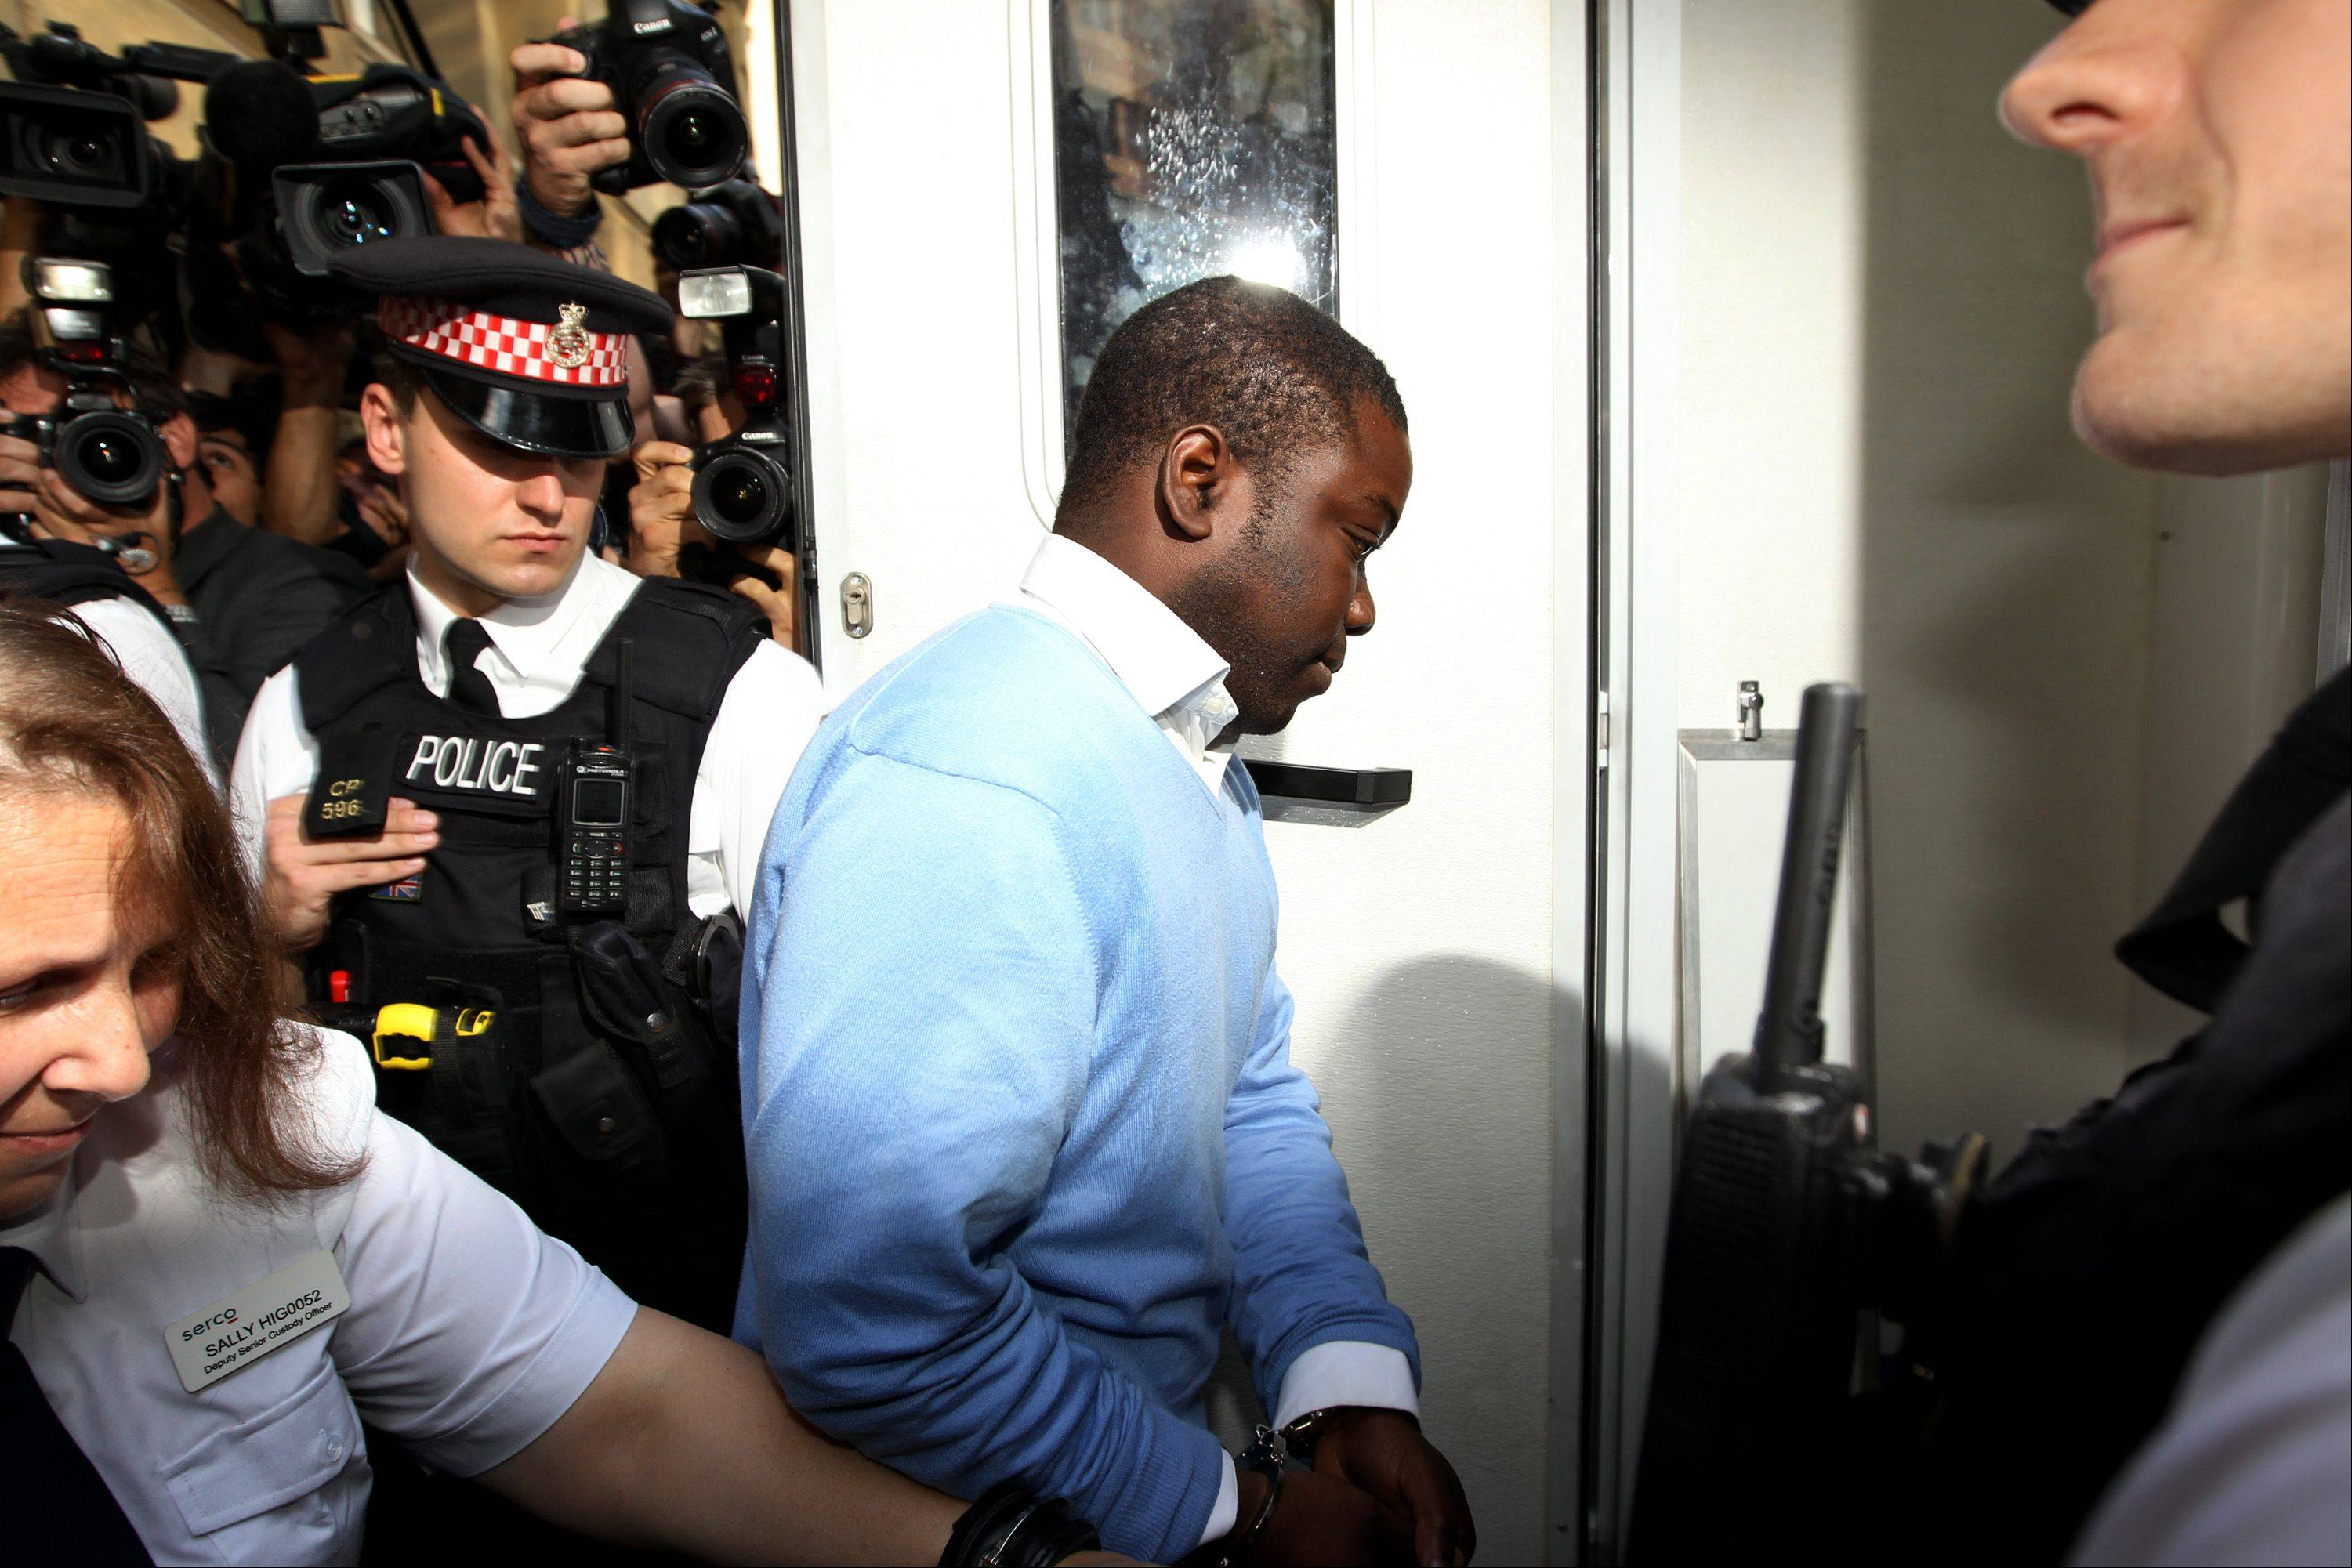 Kweku Adoboli, the UBS trader, center, enters a prison van following his appearance at the City of London magistrates court in London, U.K., on Friday. Adoboli, the trader arrested on suspicion of fraud at UBS AG, hired lawyers at Kingsley Napley LLP in London to represent him, a spokeswoman for the law firm said today in a phone interview.